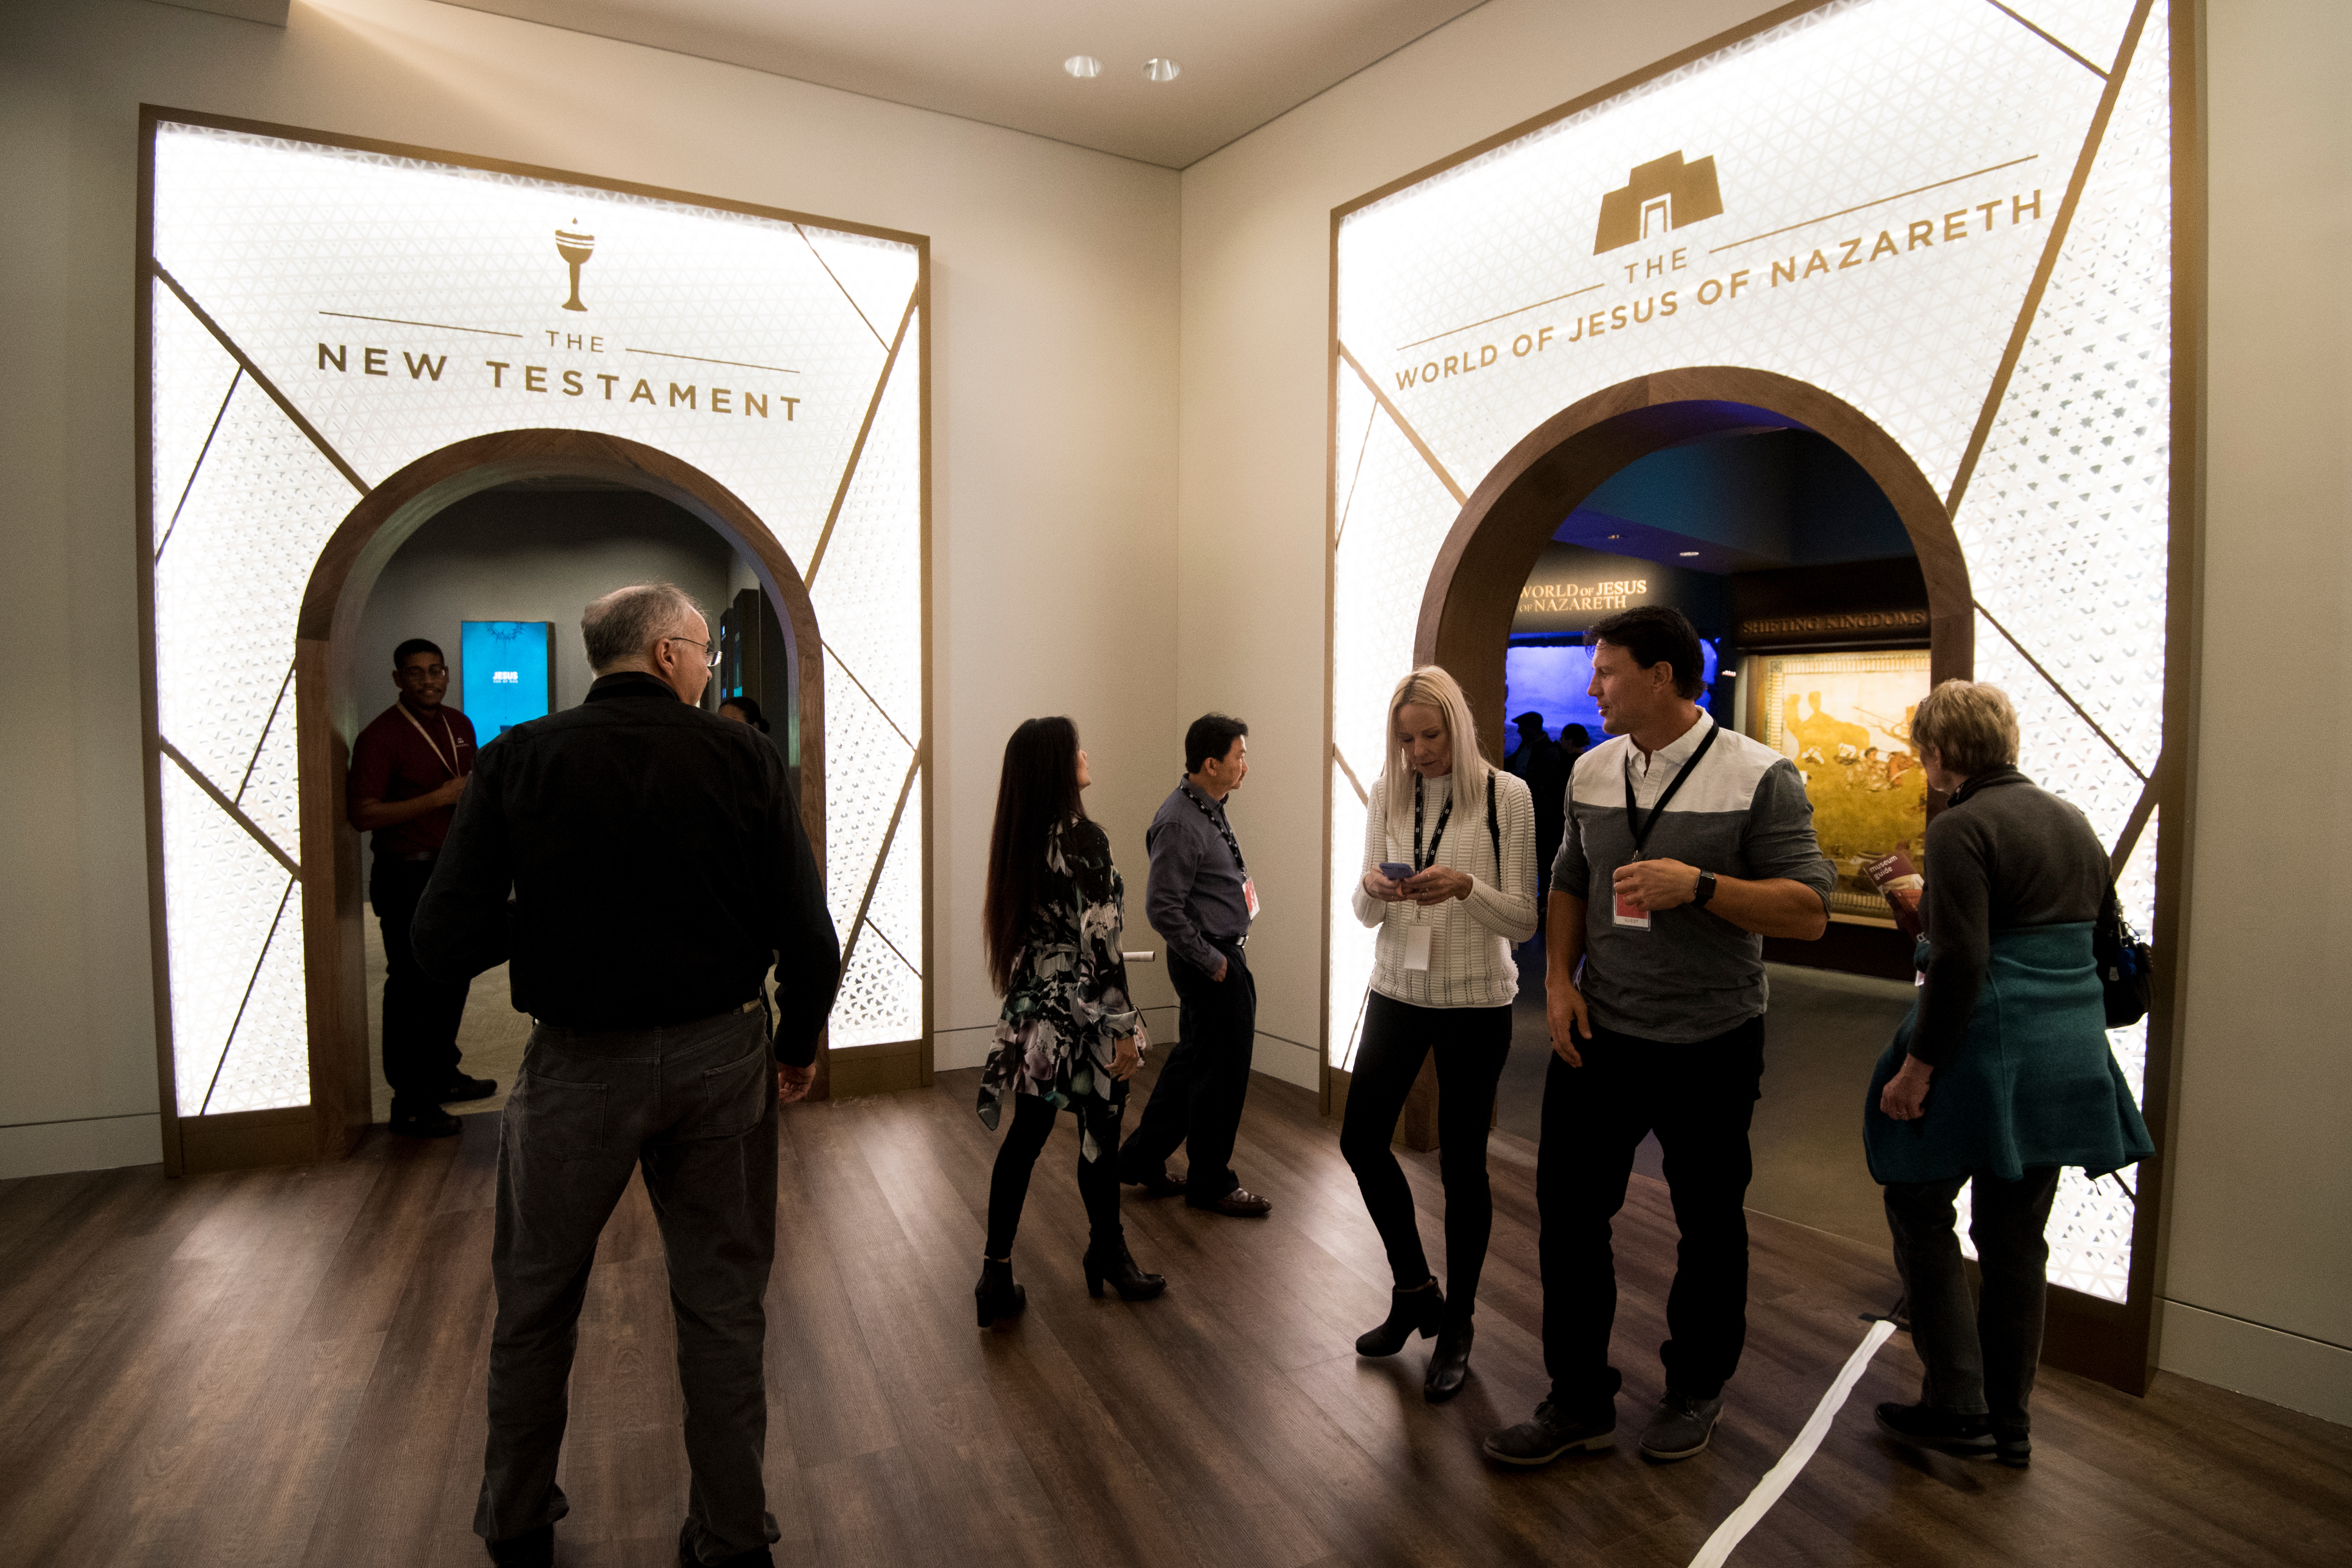 UNITED STATES - NOVEMBER 15: Visitors walk through the third floor exhibits in the Museum of the Bible on Wednesday, Nov. 15, 2017. (Photo By Bill Clark/CQ Roll Call)